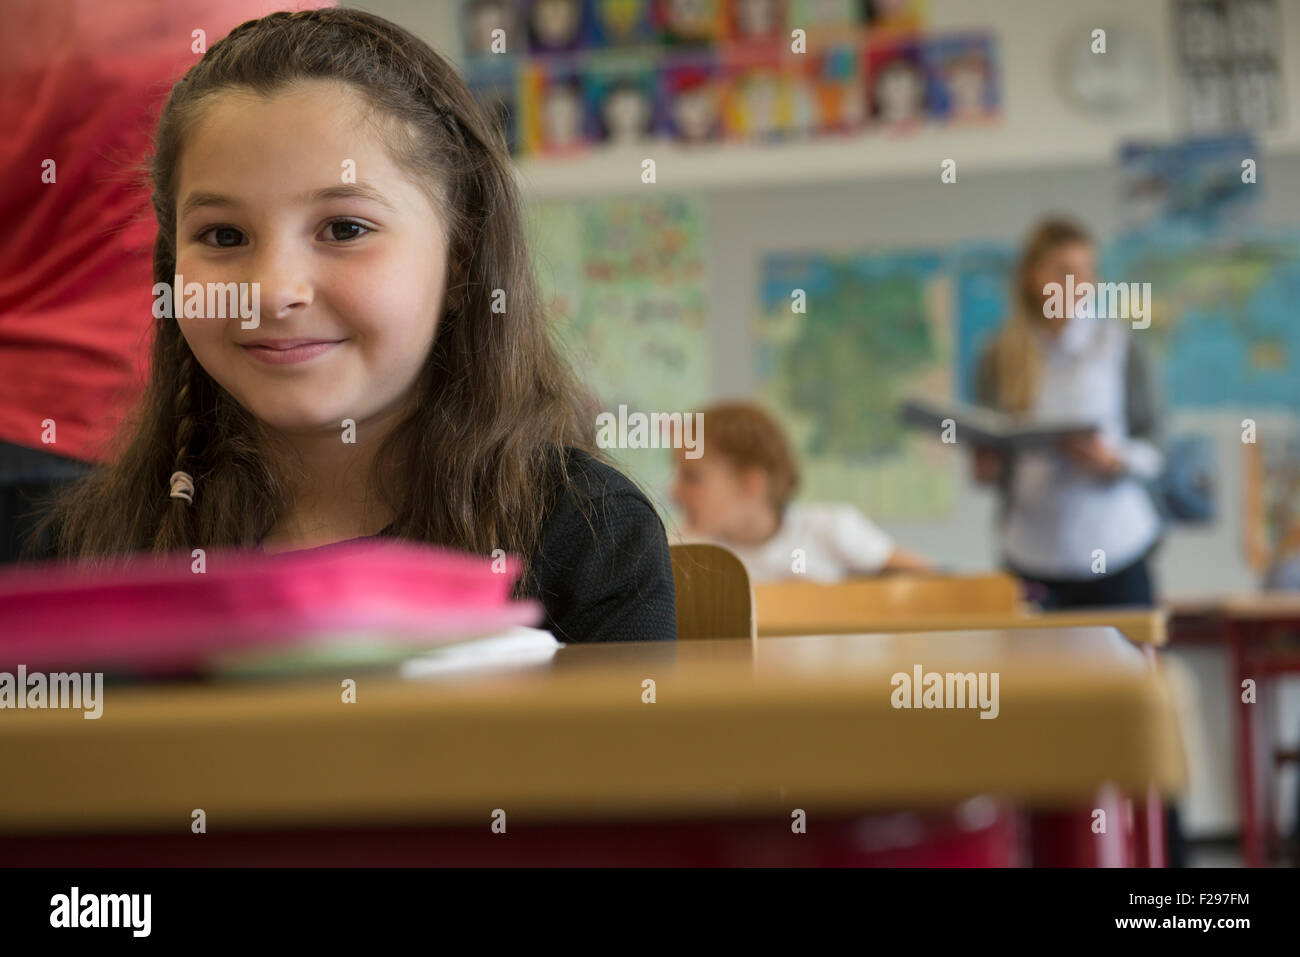 Portrait of a schoolgirl in classroom, Munich, Bavaria, Germany - Stock Image